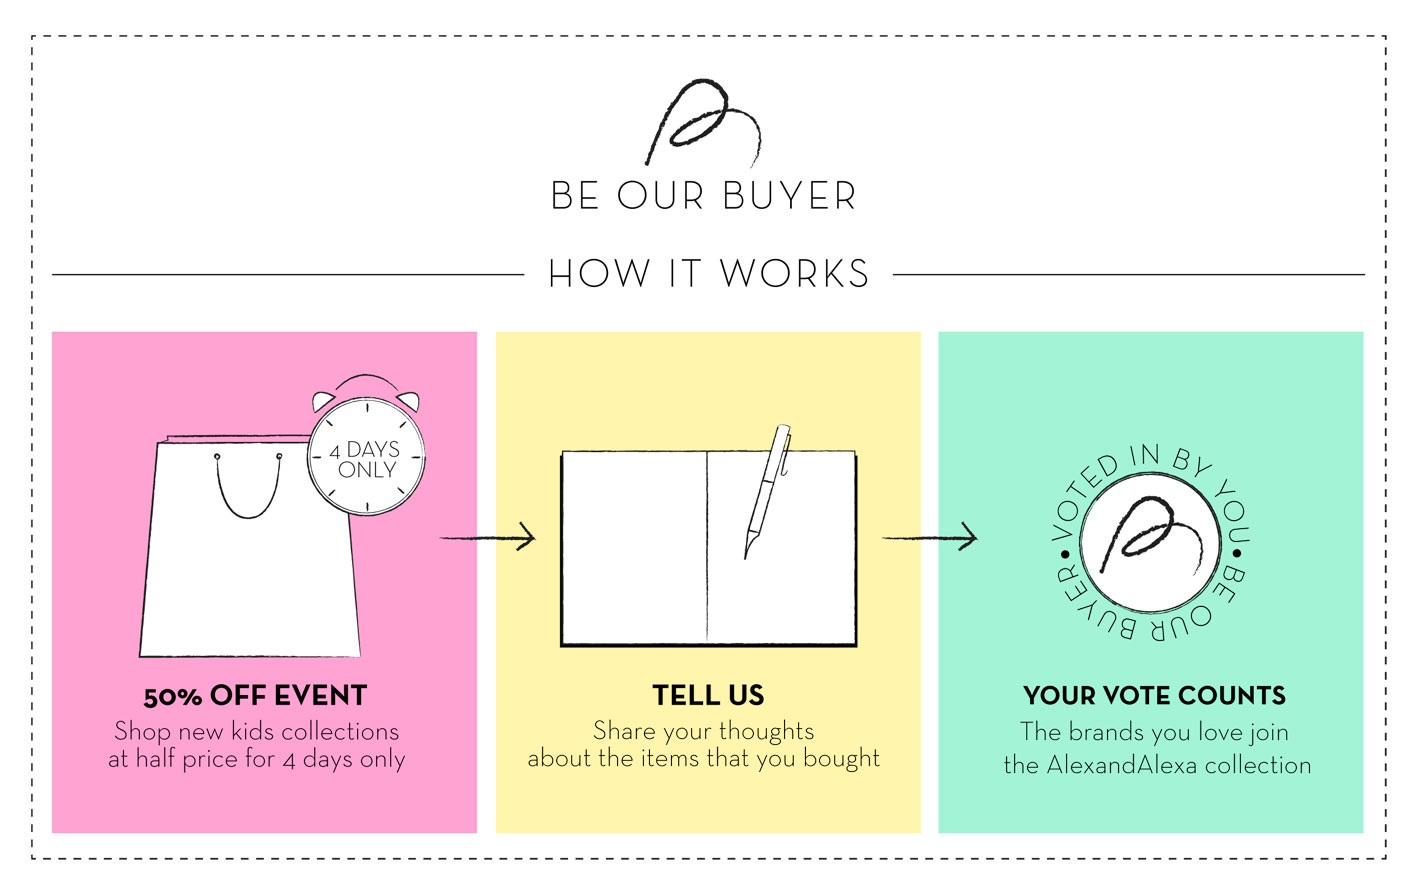 c0a0afa451 The  Be Our Buyer  shopping event is back! New brands